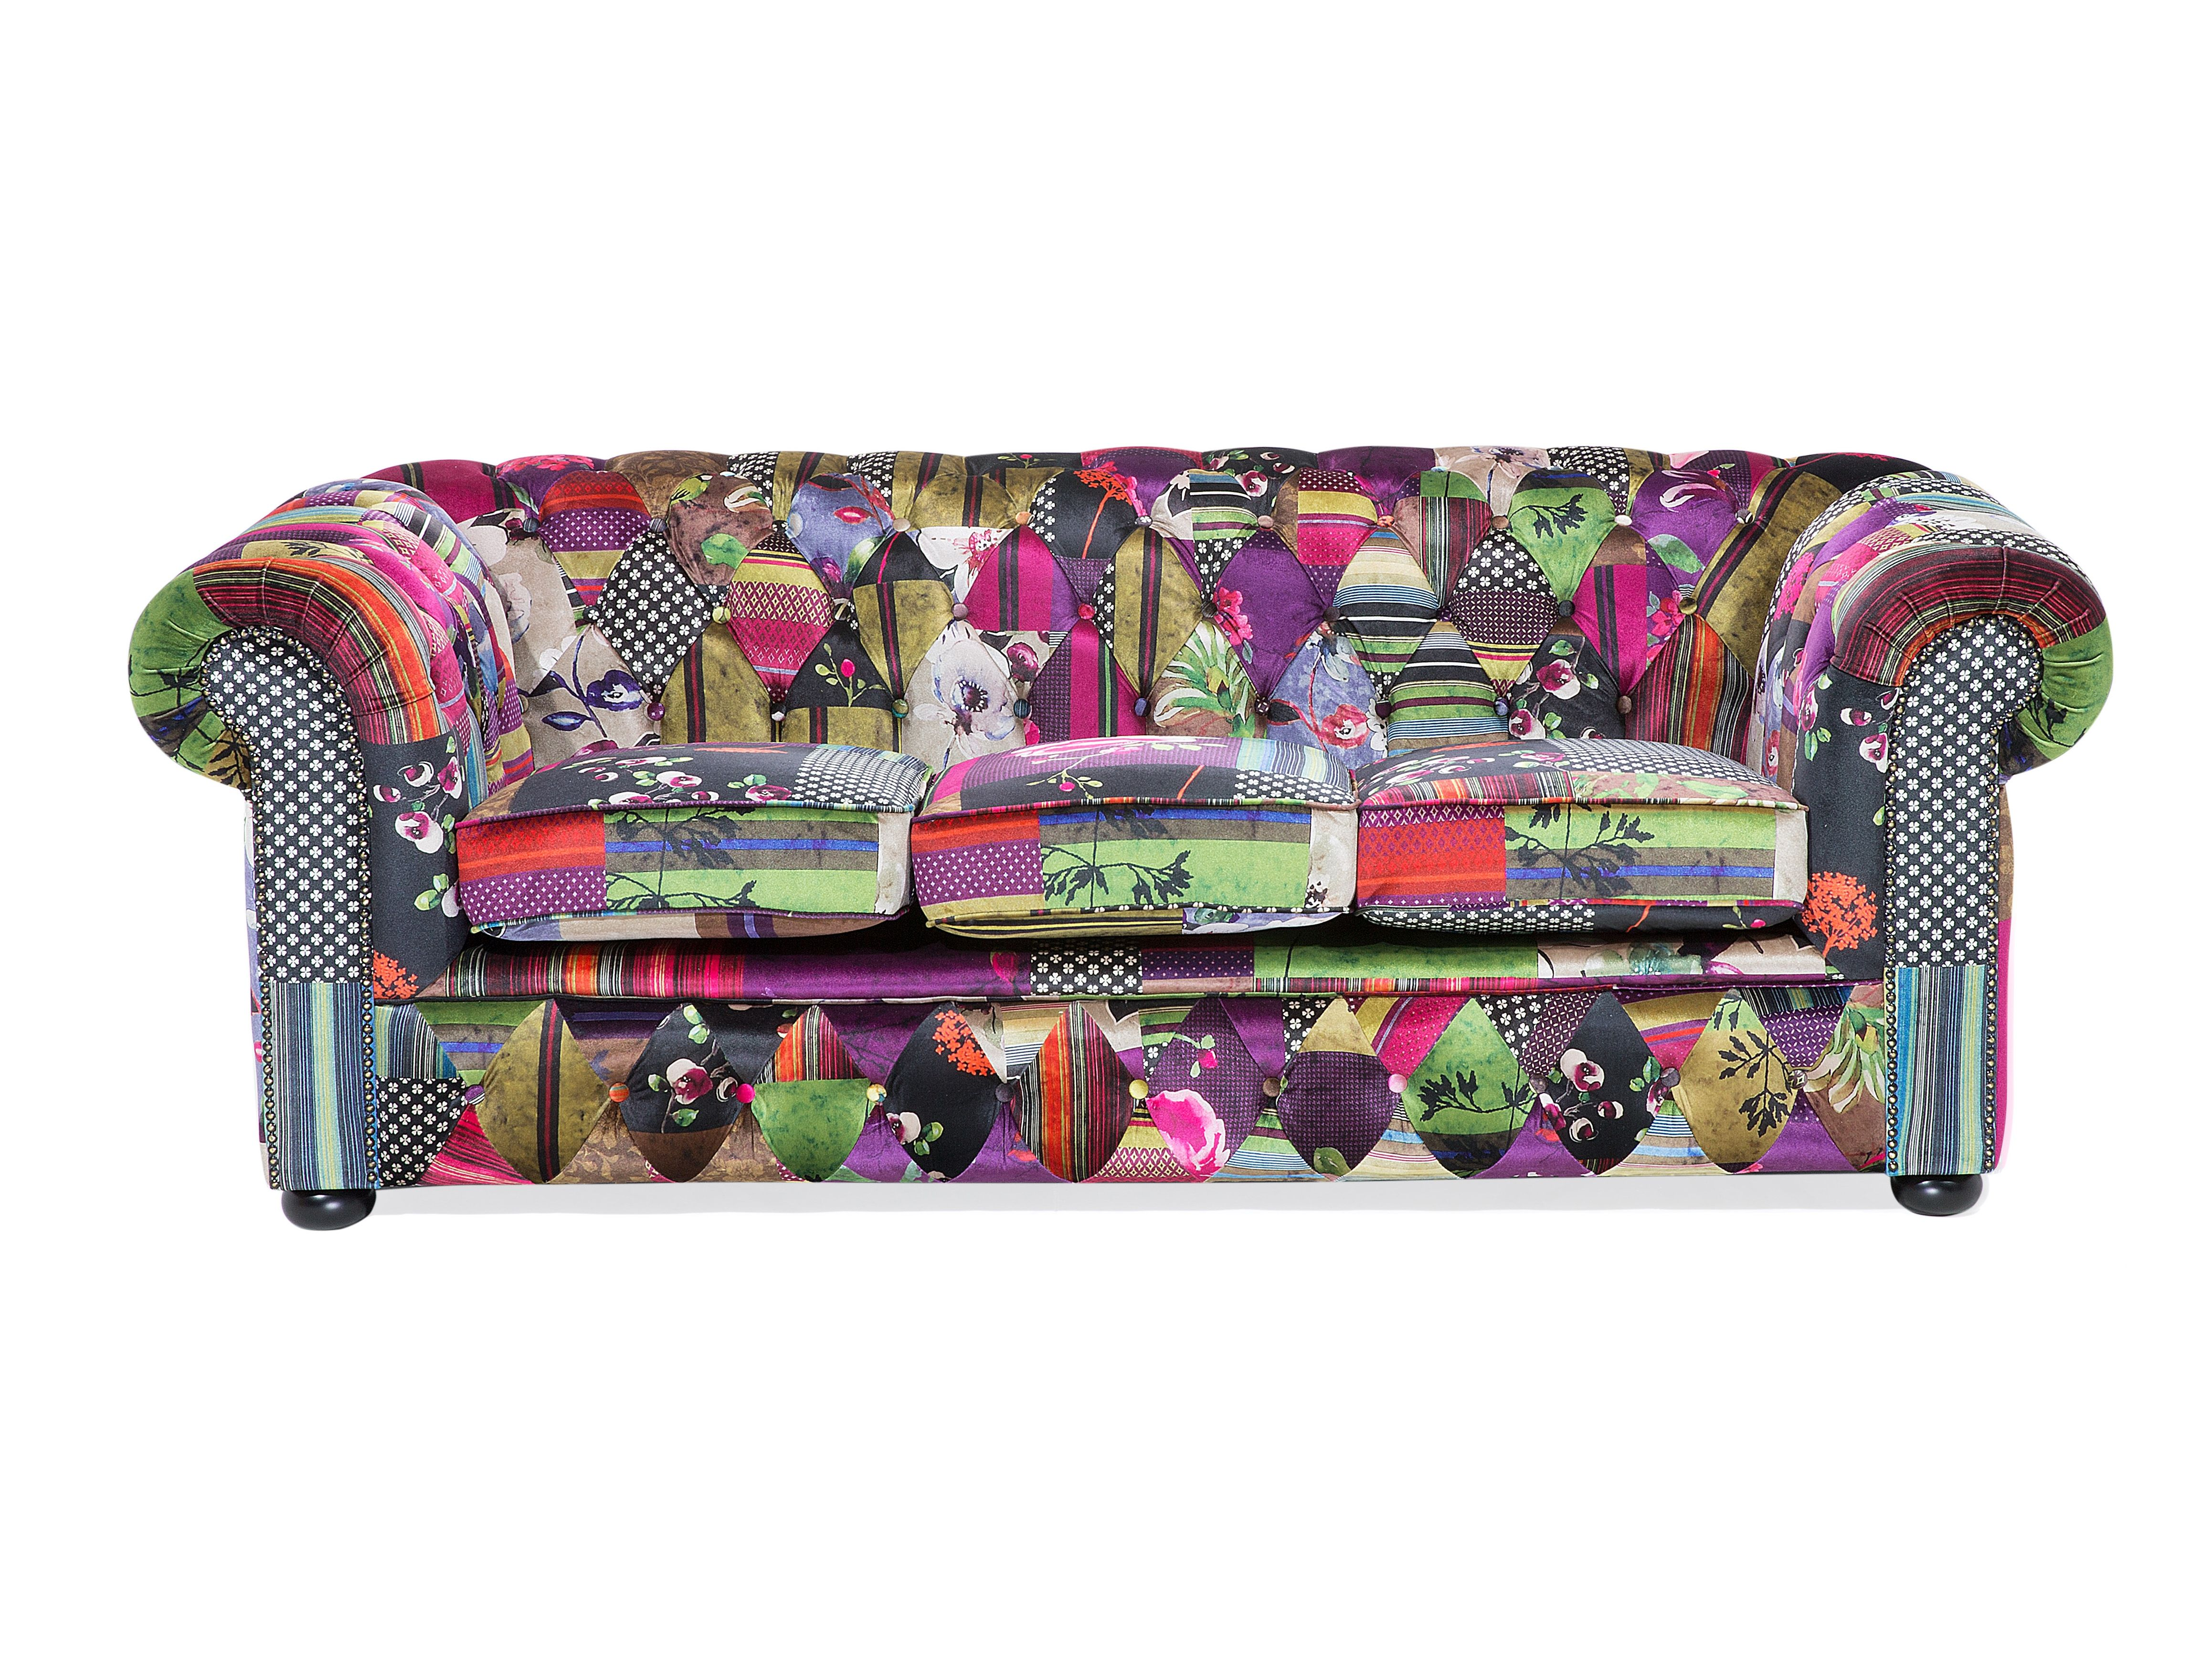 Chesterfield Sofa Patchwork  Russcarnahancom